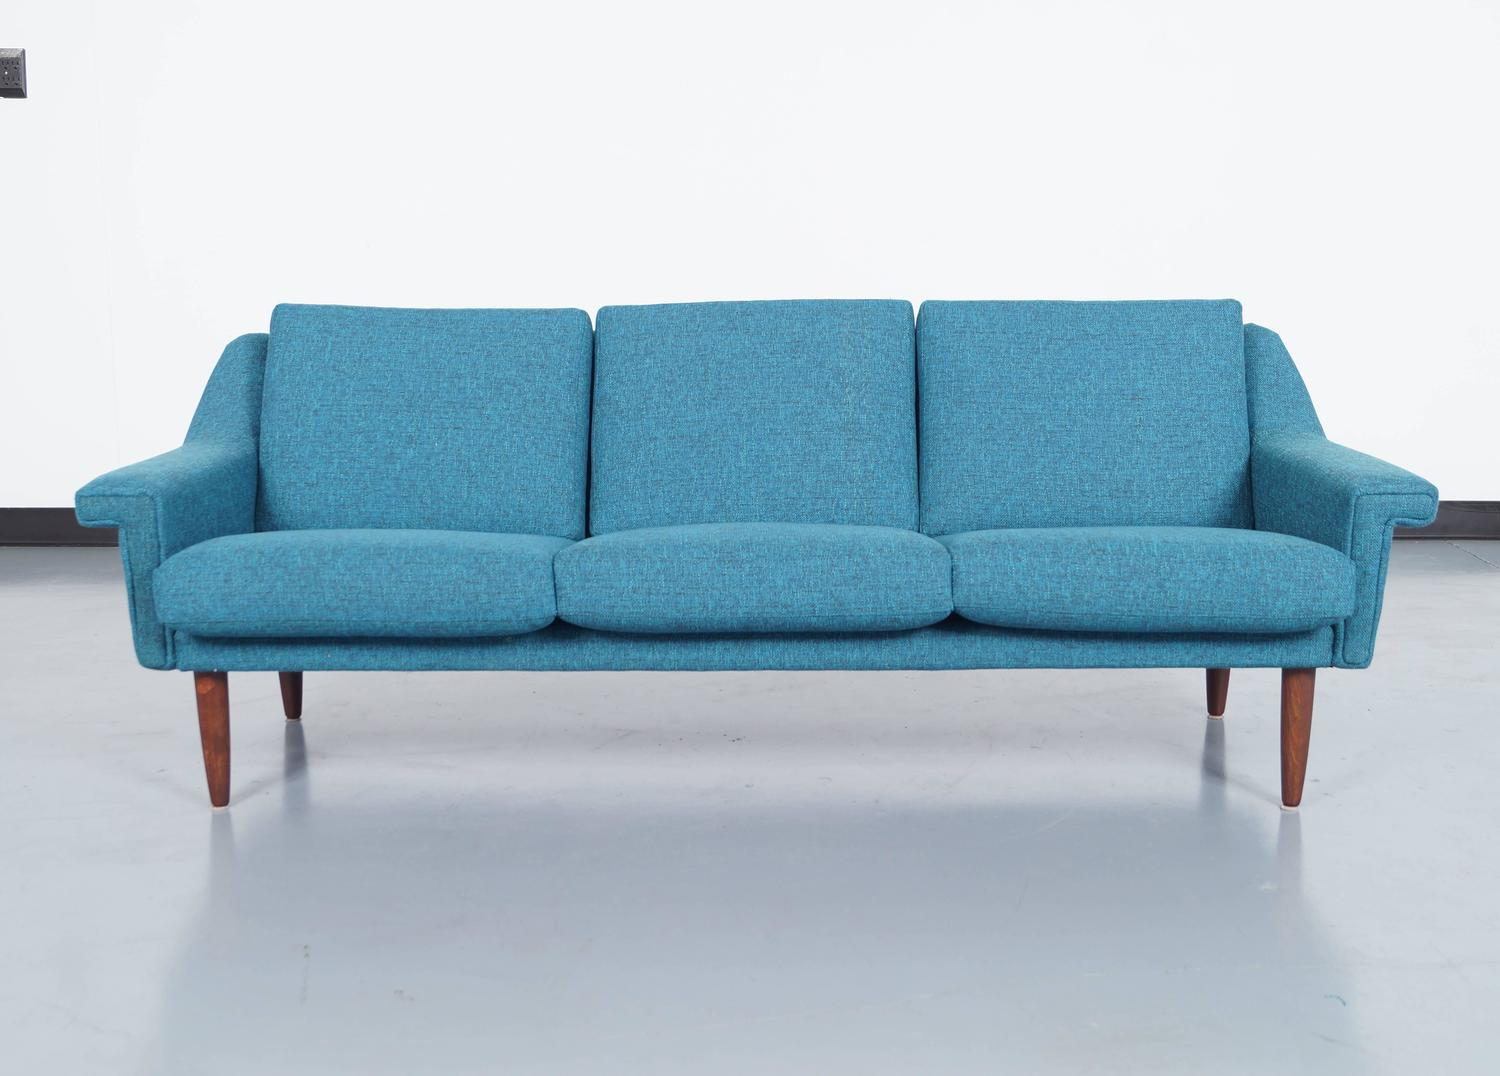 Danish modern sofa for sale at 1stdibs for Modern sofas for sale